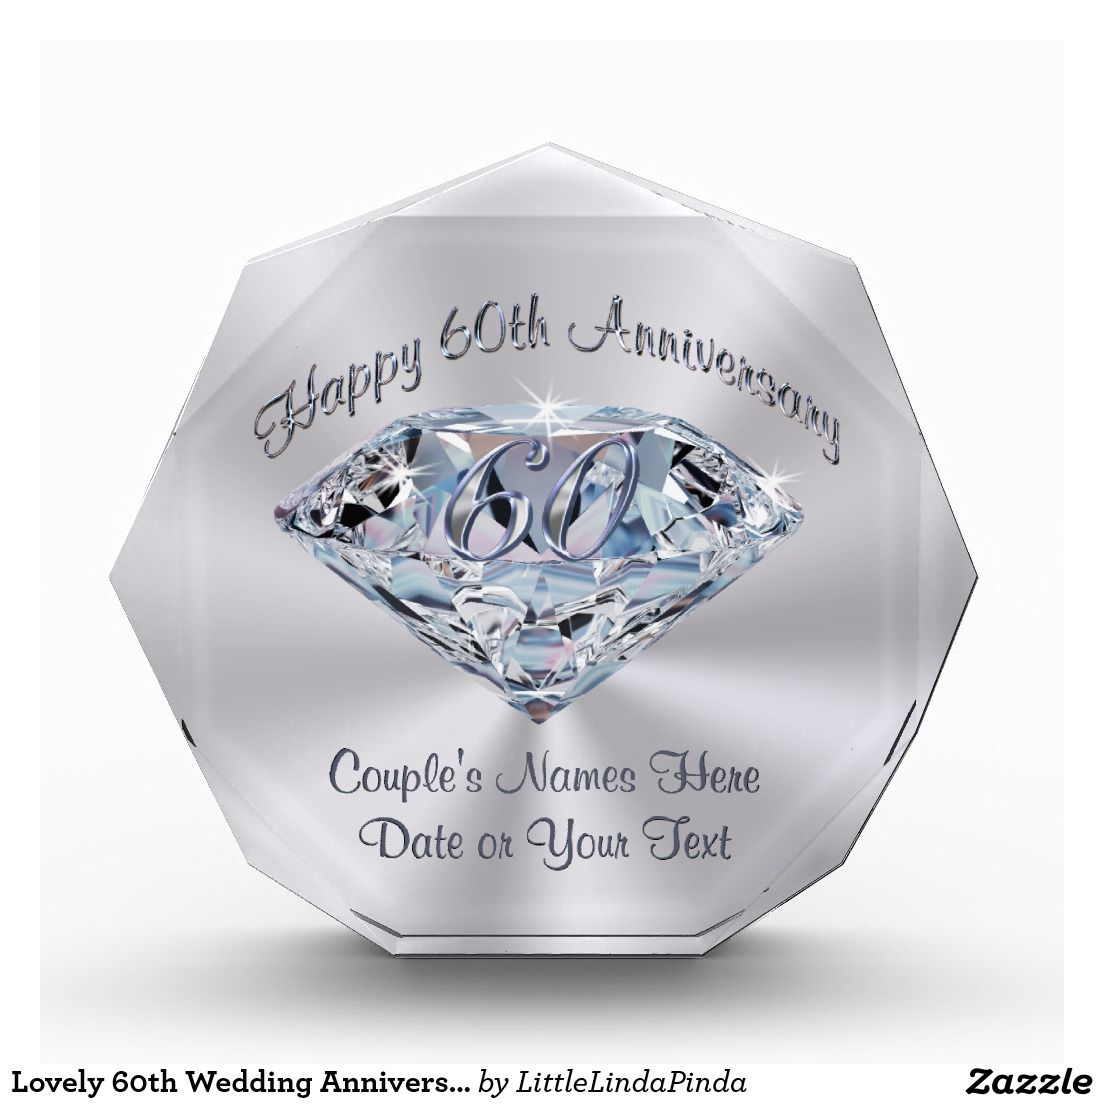 The Metal Foundry 60th Diamond Wedding Anniversary Sundial Gift Idea is A Great Present for Him, for Her Or for A Couple to Celebrate 60 Years of Marriage.